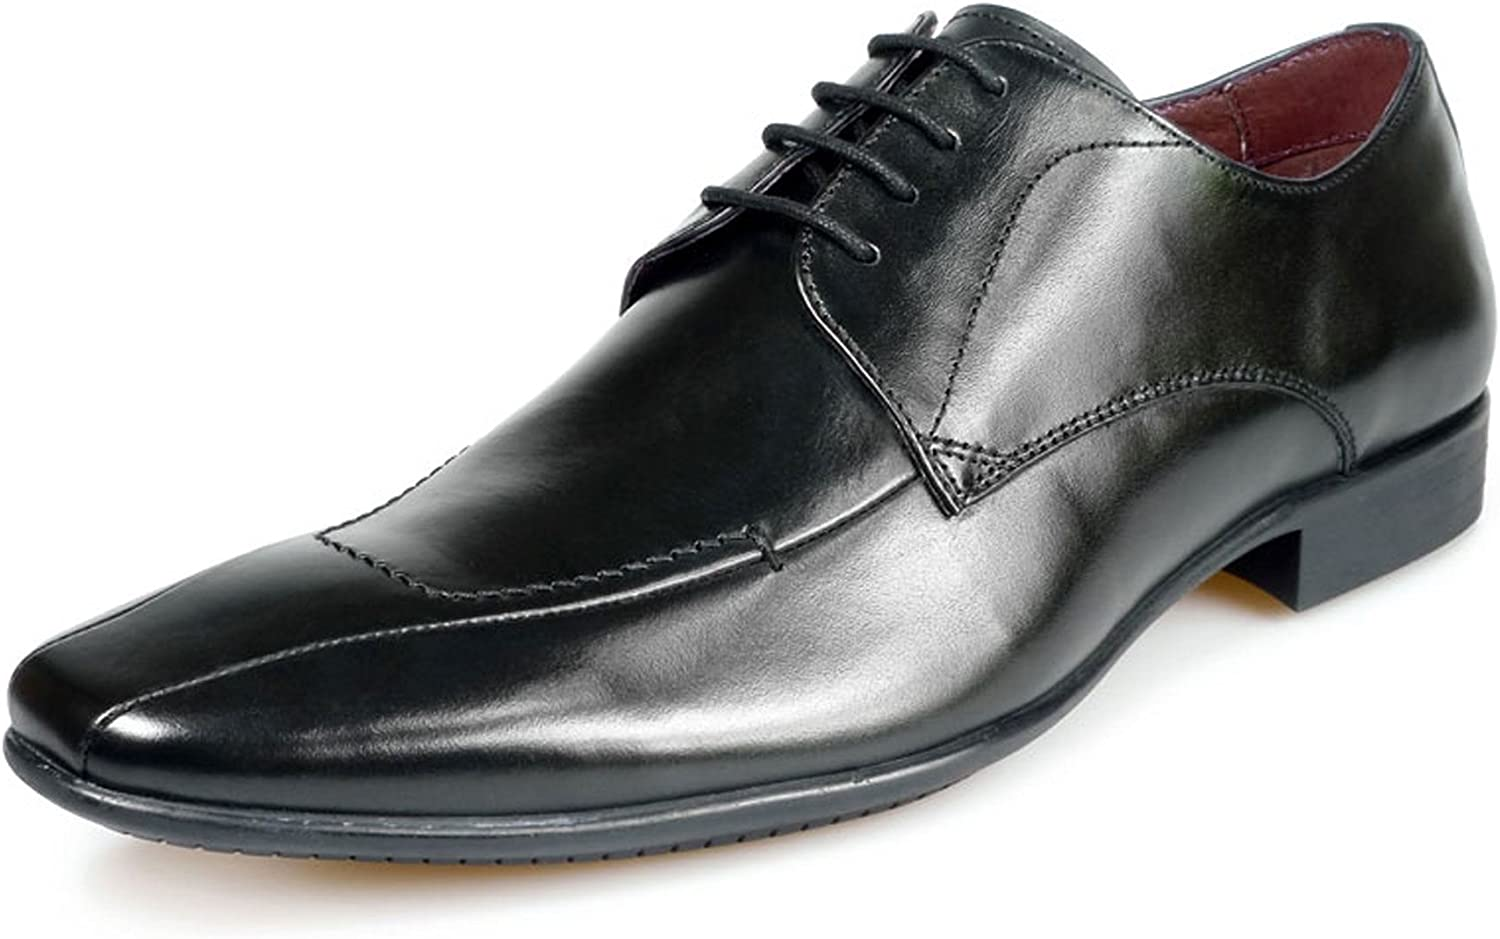 POD Como Pointed Toe Lace Up Casual Formal Mens Leather shoes